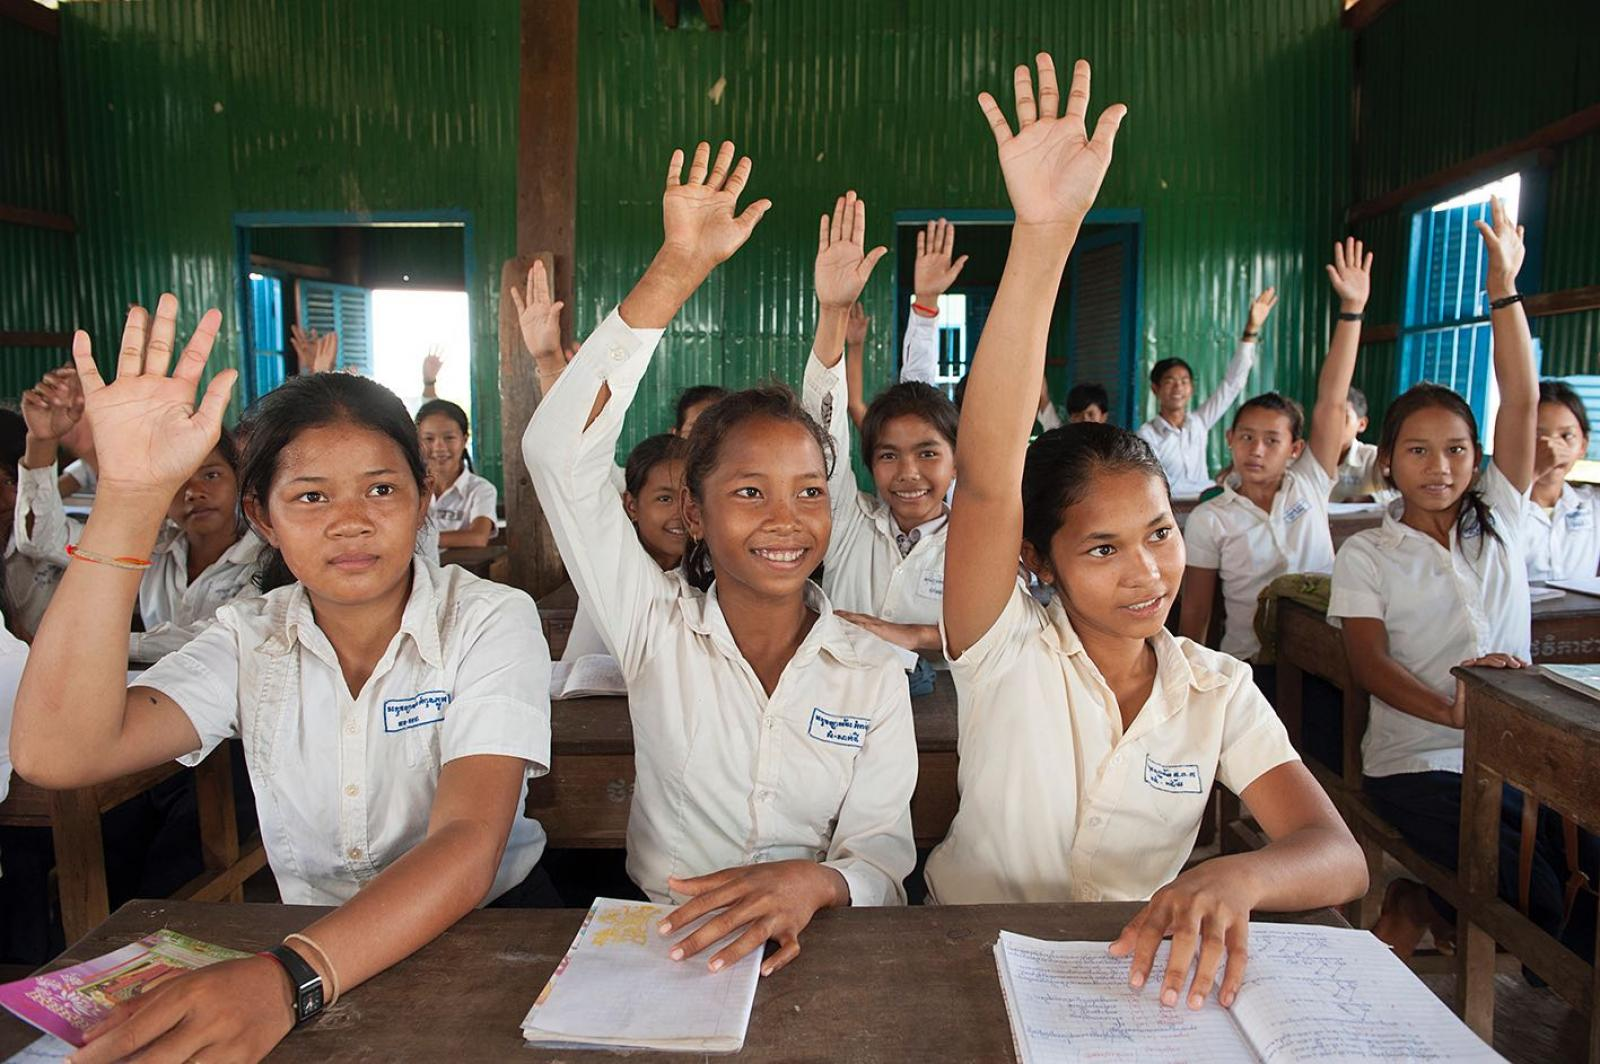 Three girls raising hands in classroom